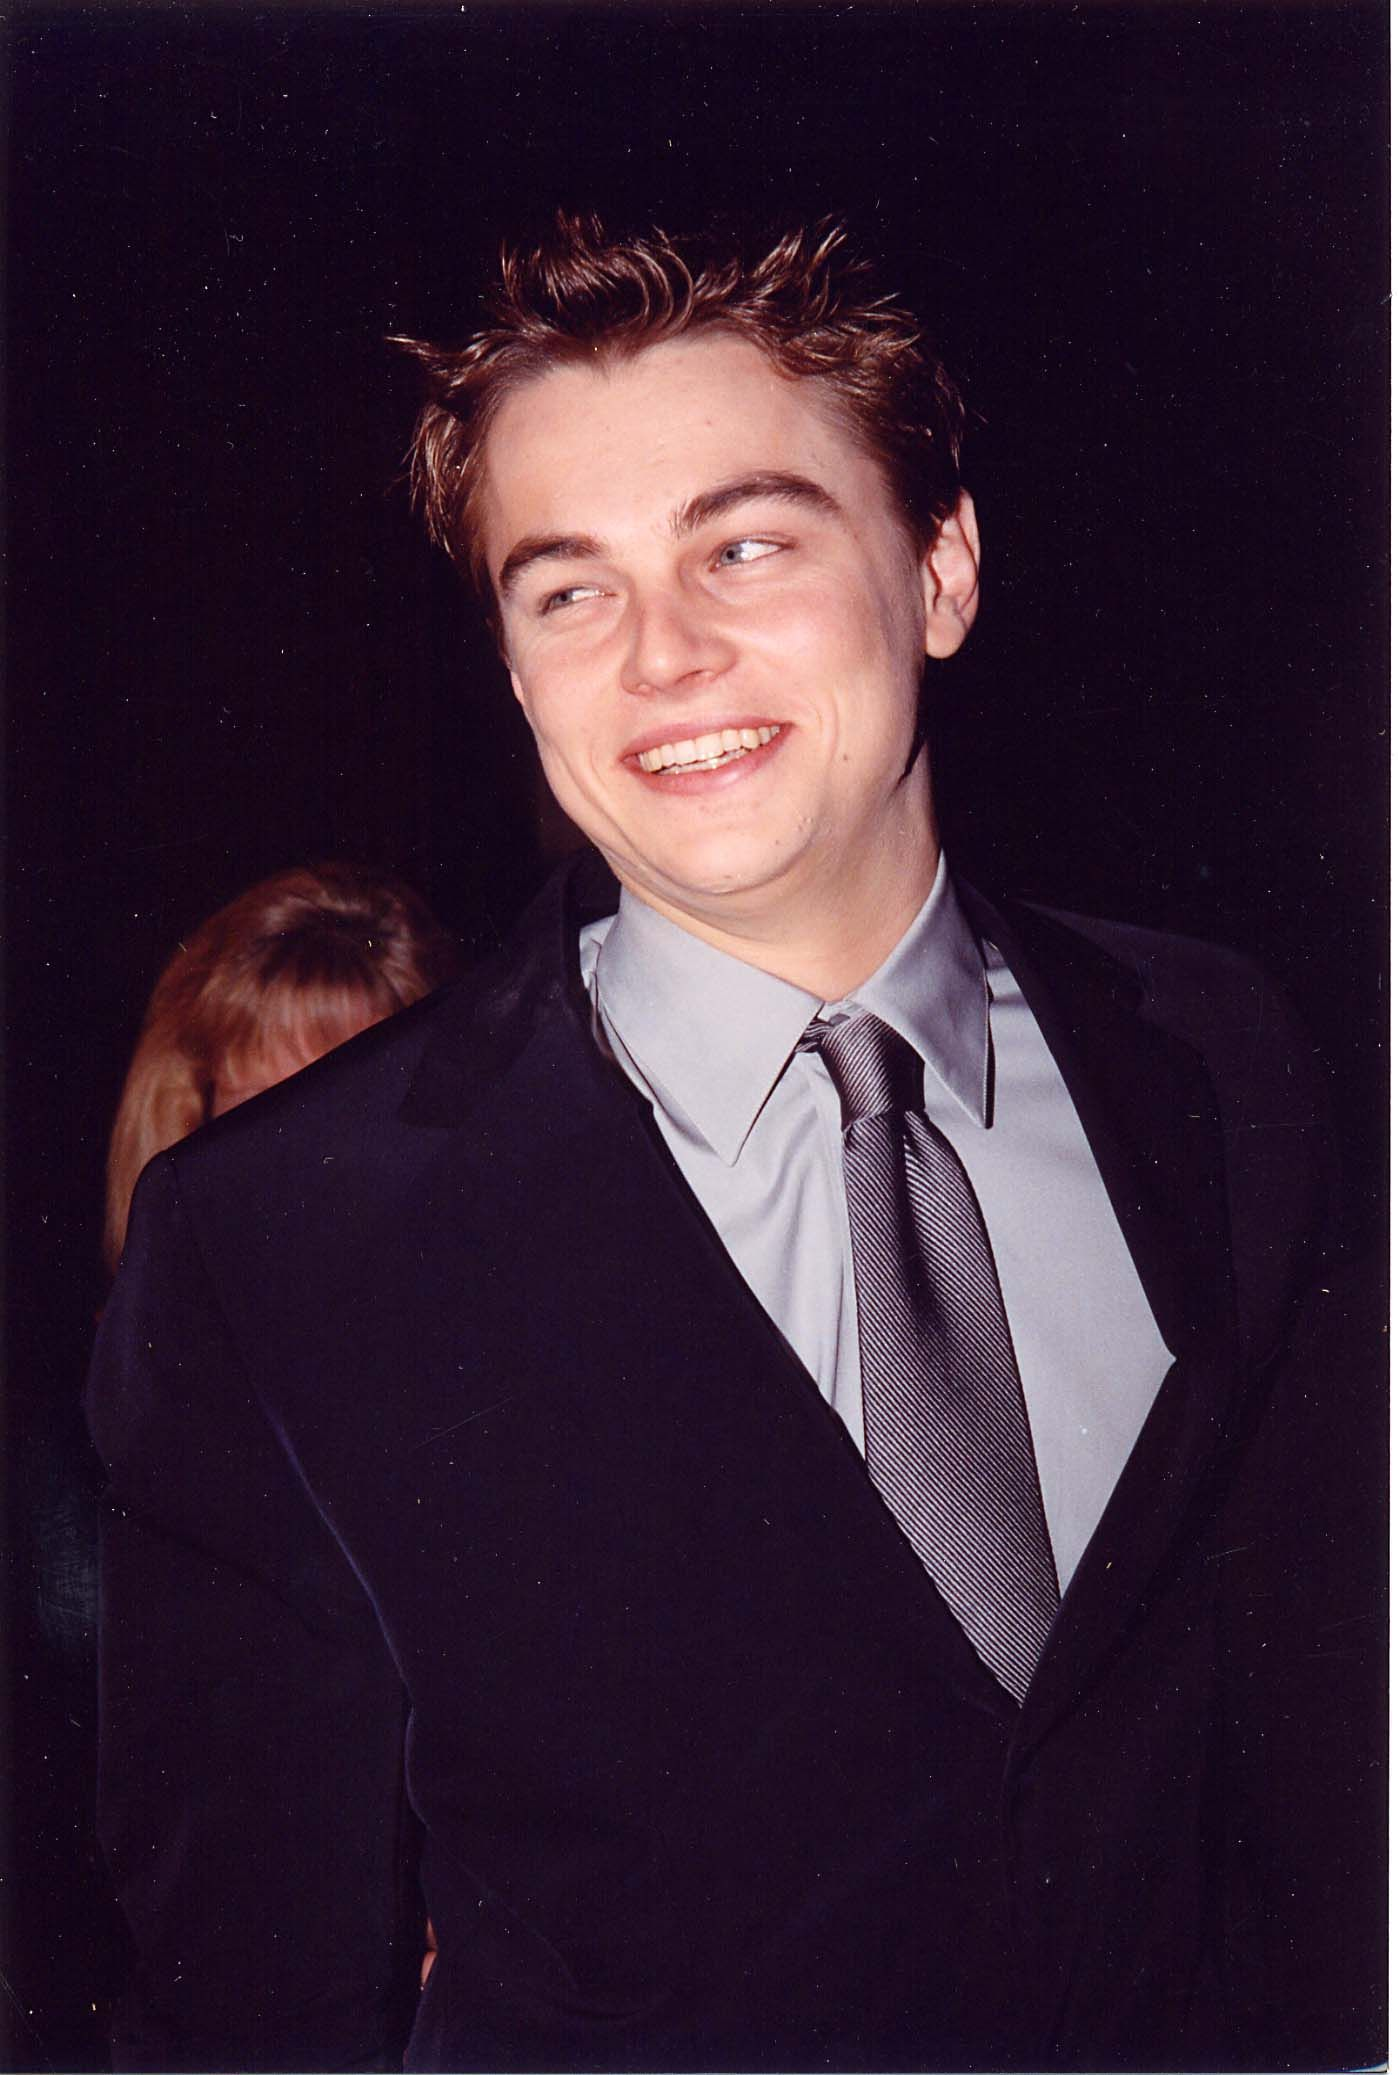 Favorite Leo from Titanic shares memories of filming with DiCaprio